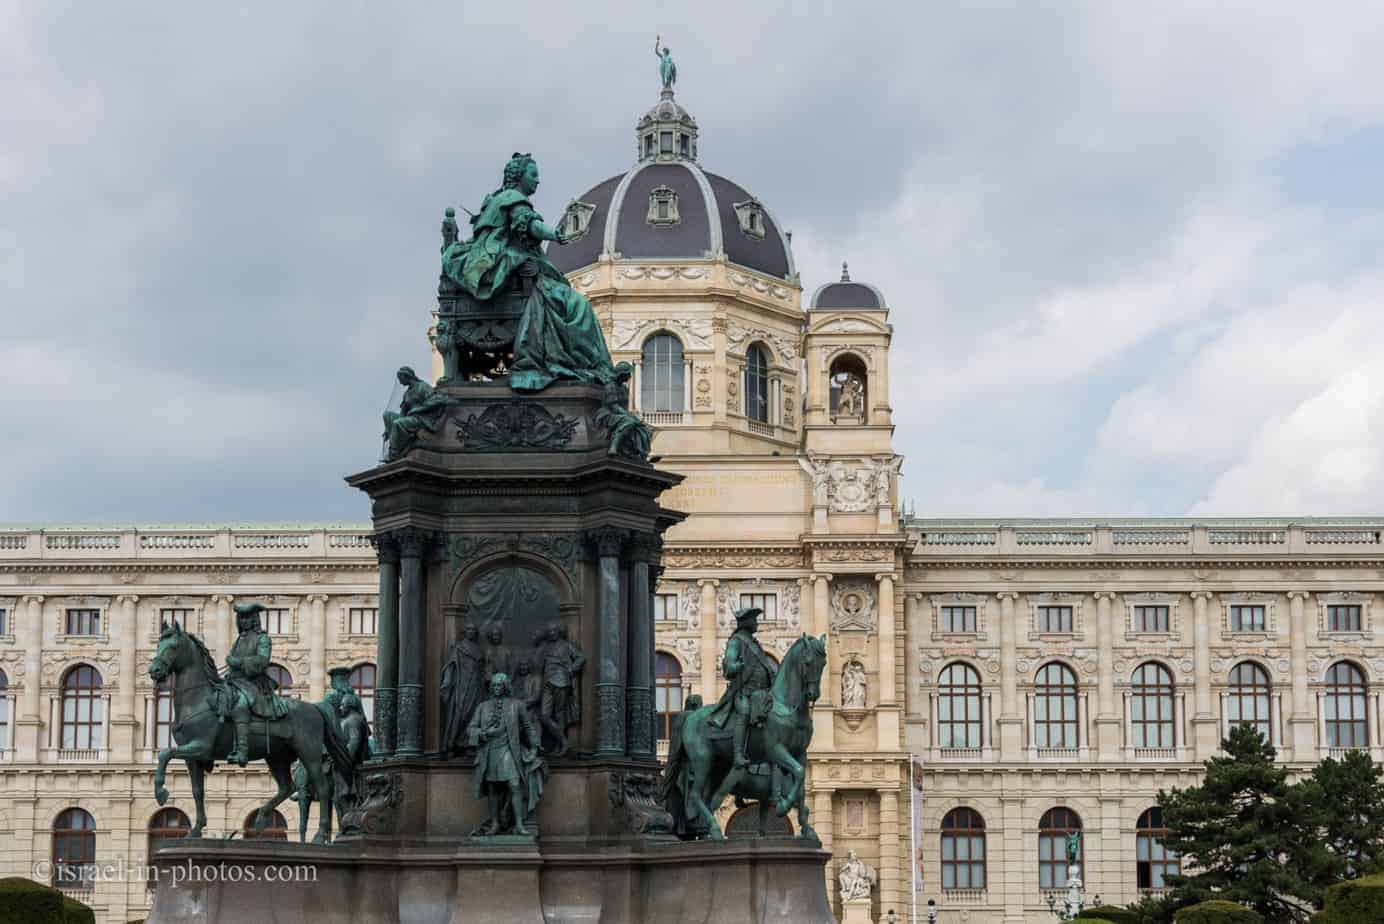 Three day visit to Vienna, Austria's capital